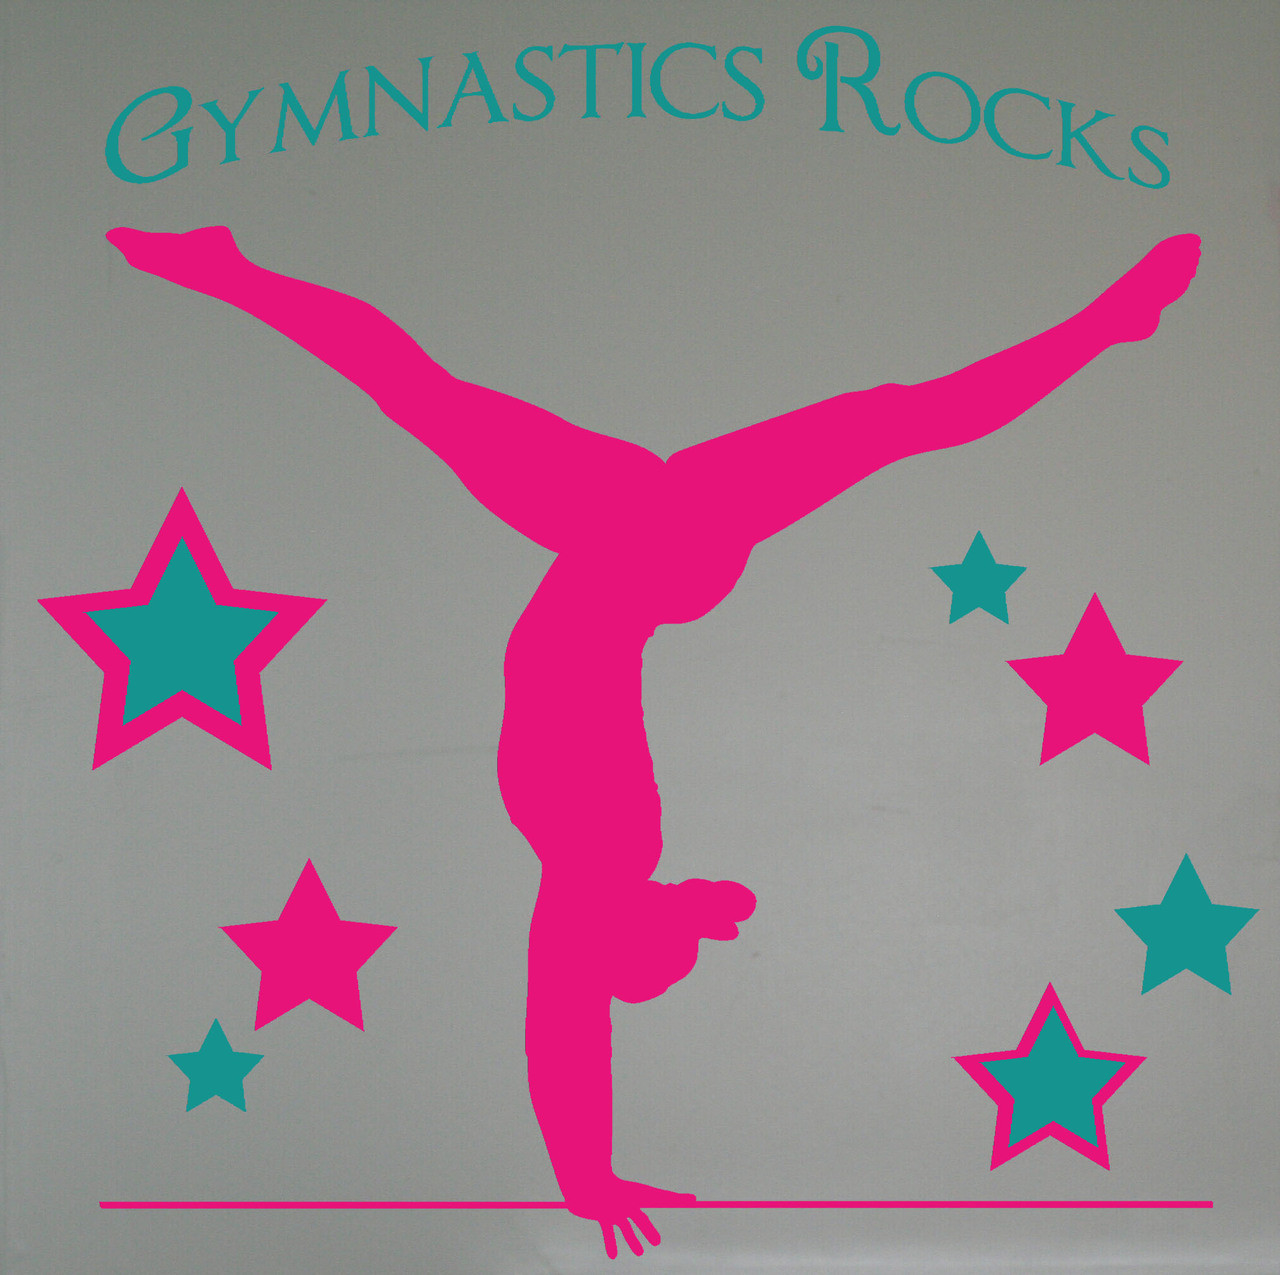 Balancing gymnast silhouette and stars with gymnastics rocks girls balancing gymnast silhouette and stars with gymnastics rocks girls wall stickers decals loading zoom amipublicfo Image collections